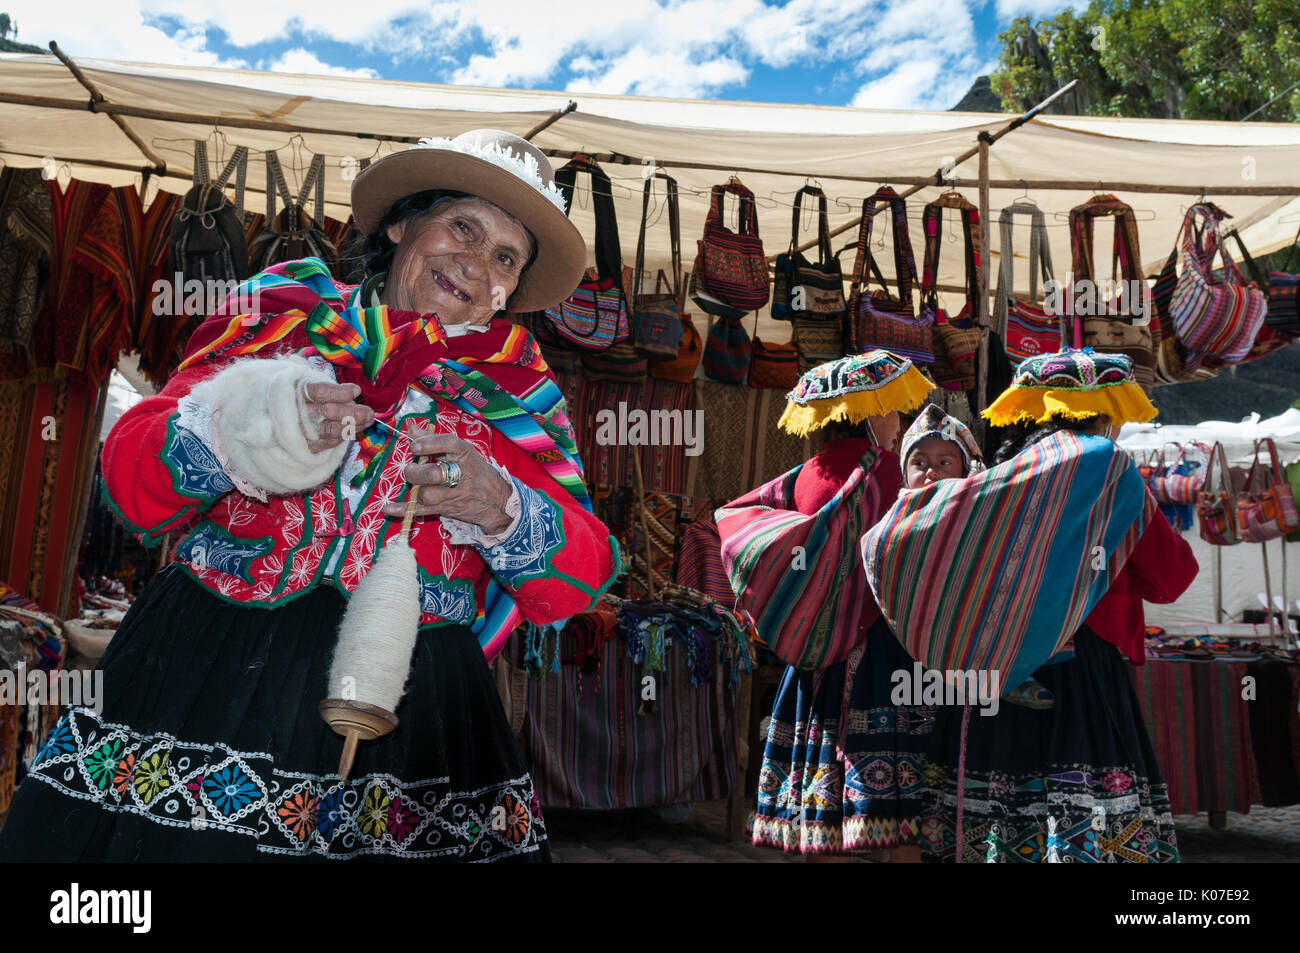 An old woman dressed in traditional Quechua clothing is hand-spinning wool into a yarn using a drop spindle in the town of Pisac near Cusco, Peru. - Stock Image